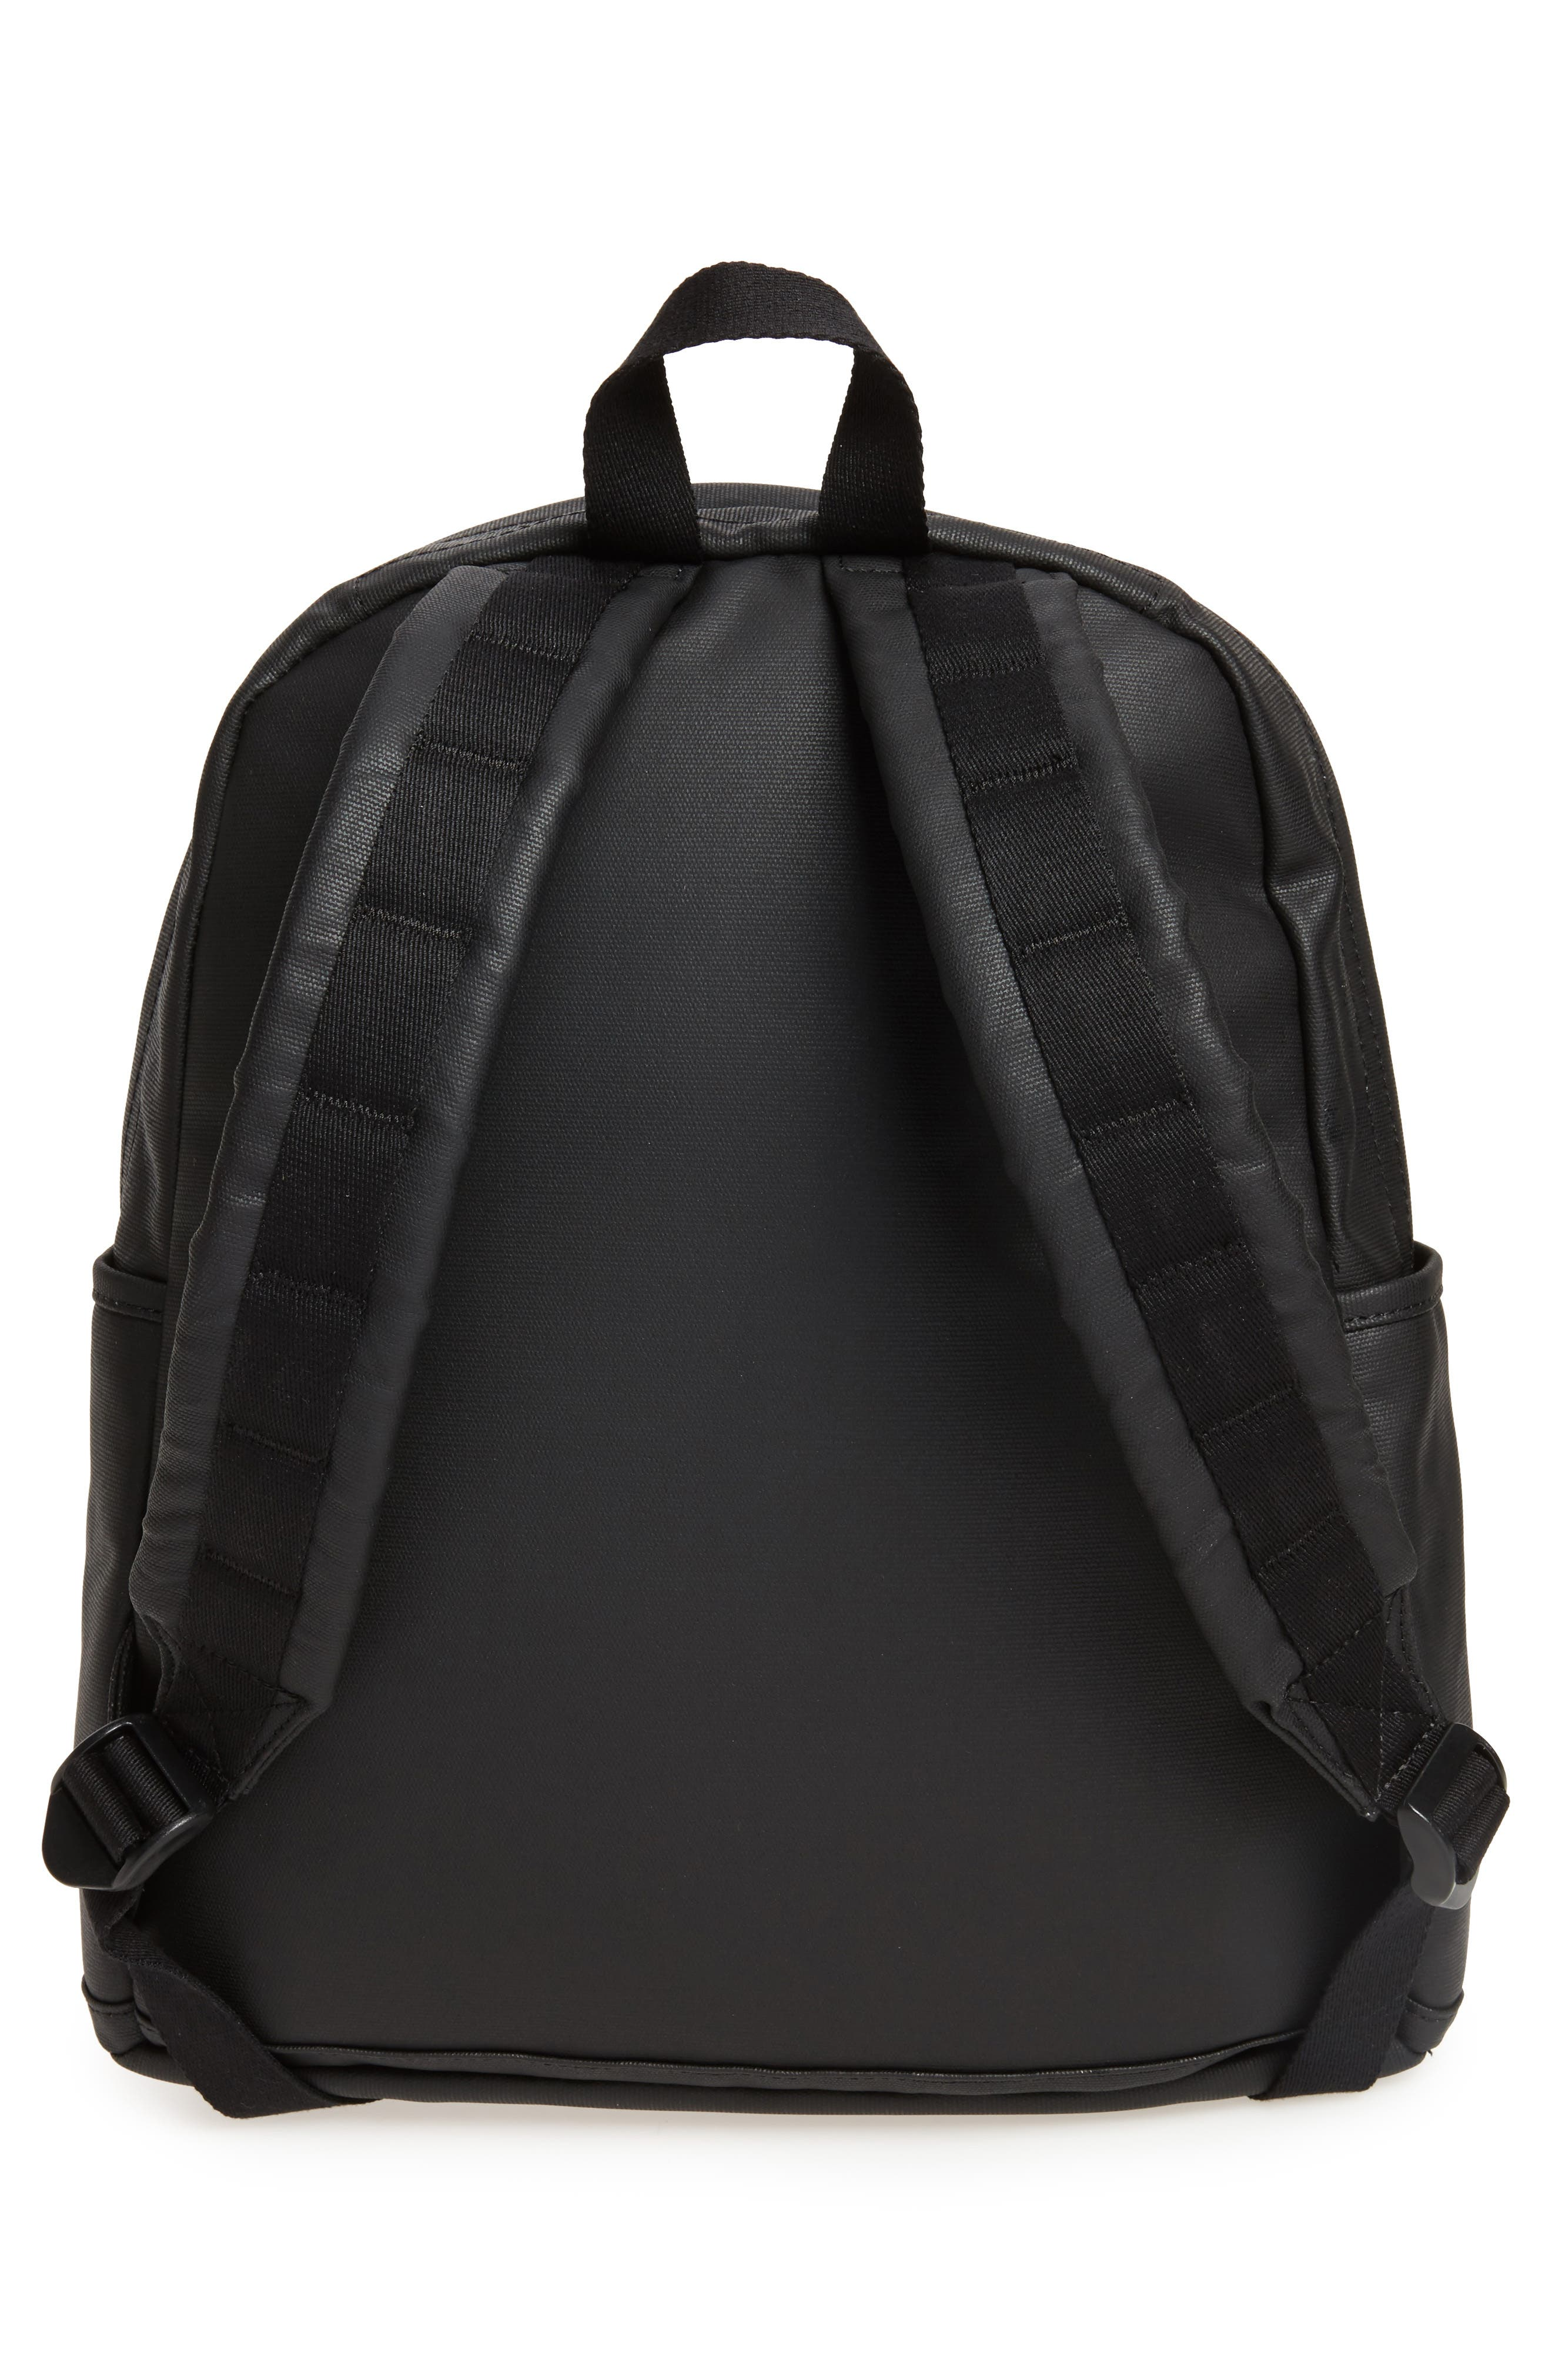 Greenpoint Kent Backpack,                             Alternate thumbnail 3, color,                             Black